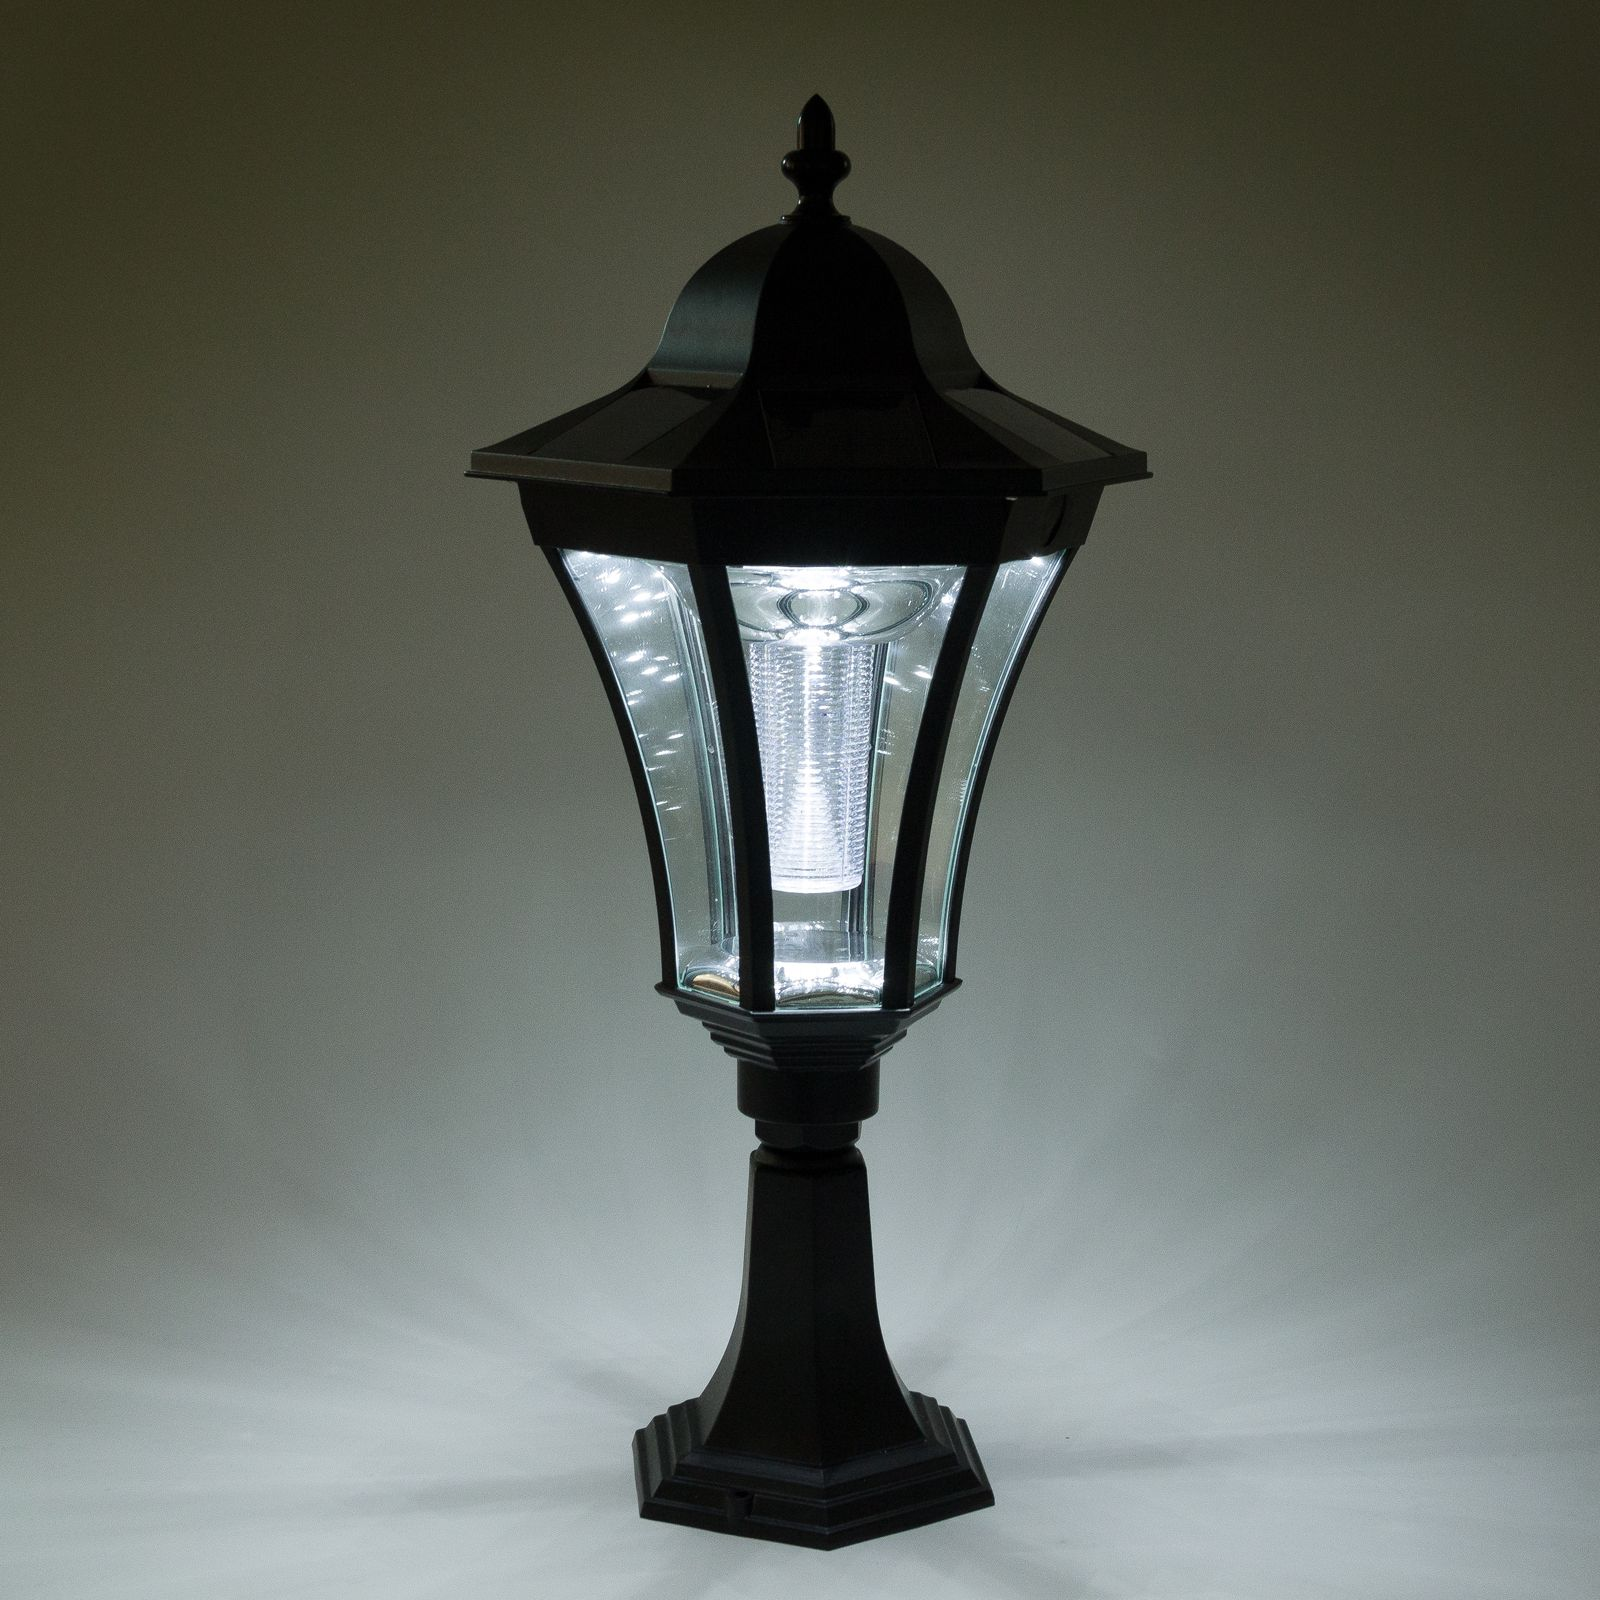 opal lamp hinkley finish item in inch black etched sullivan shown lighting cfm light wide lamps glass and post outdoor